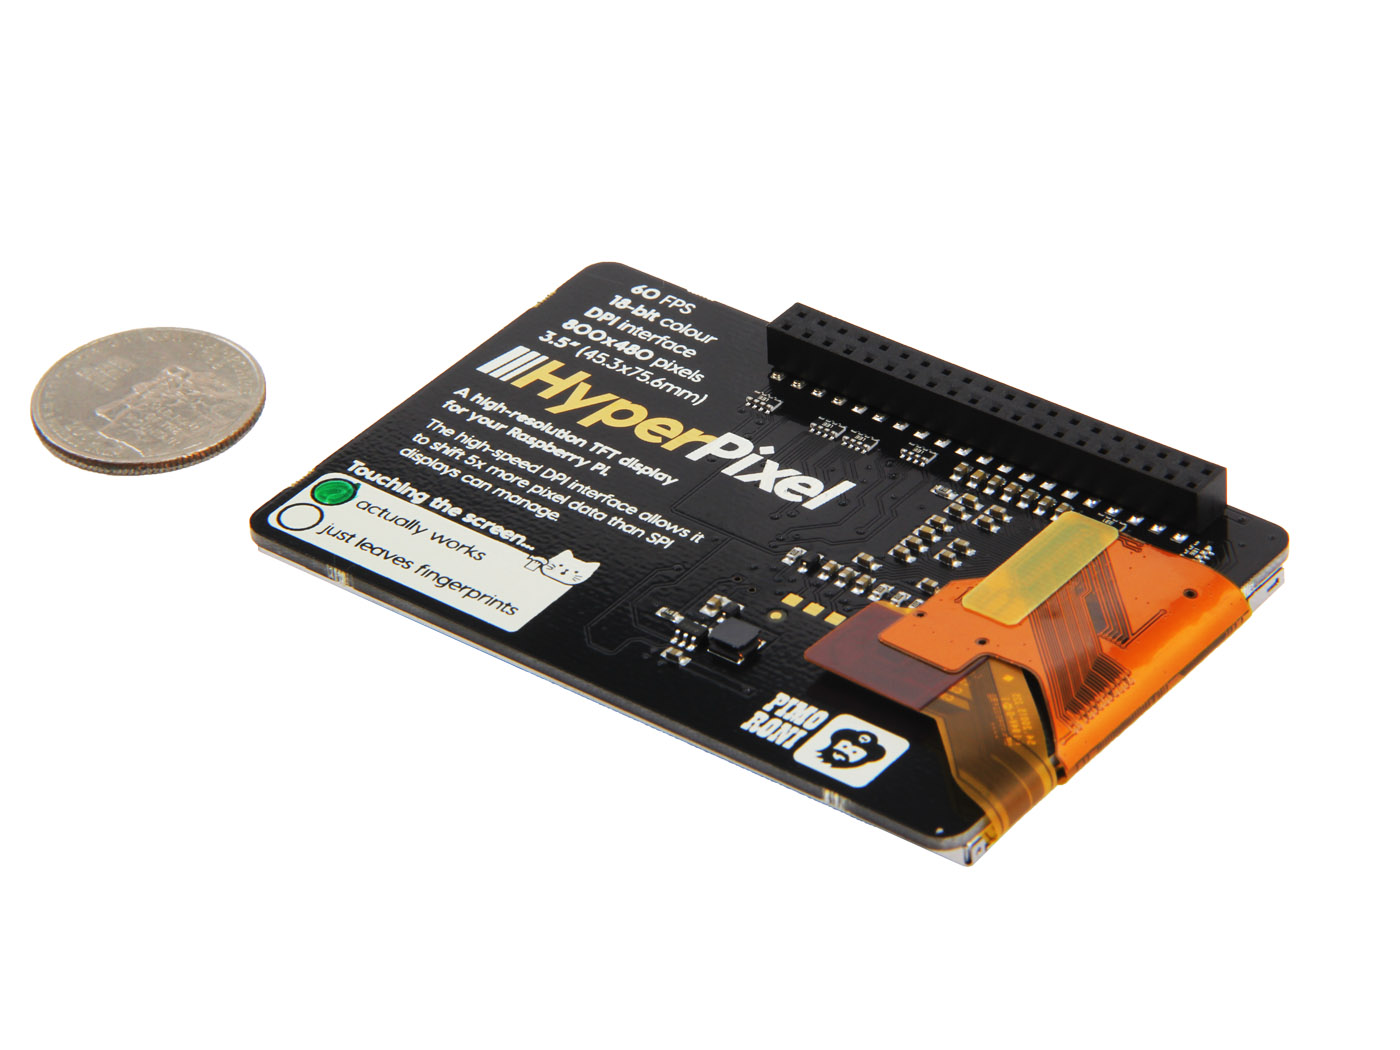 Pimoroni HyperPixel - 3.5 (inches) Hi-Res Display for Raspberry